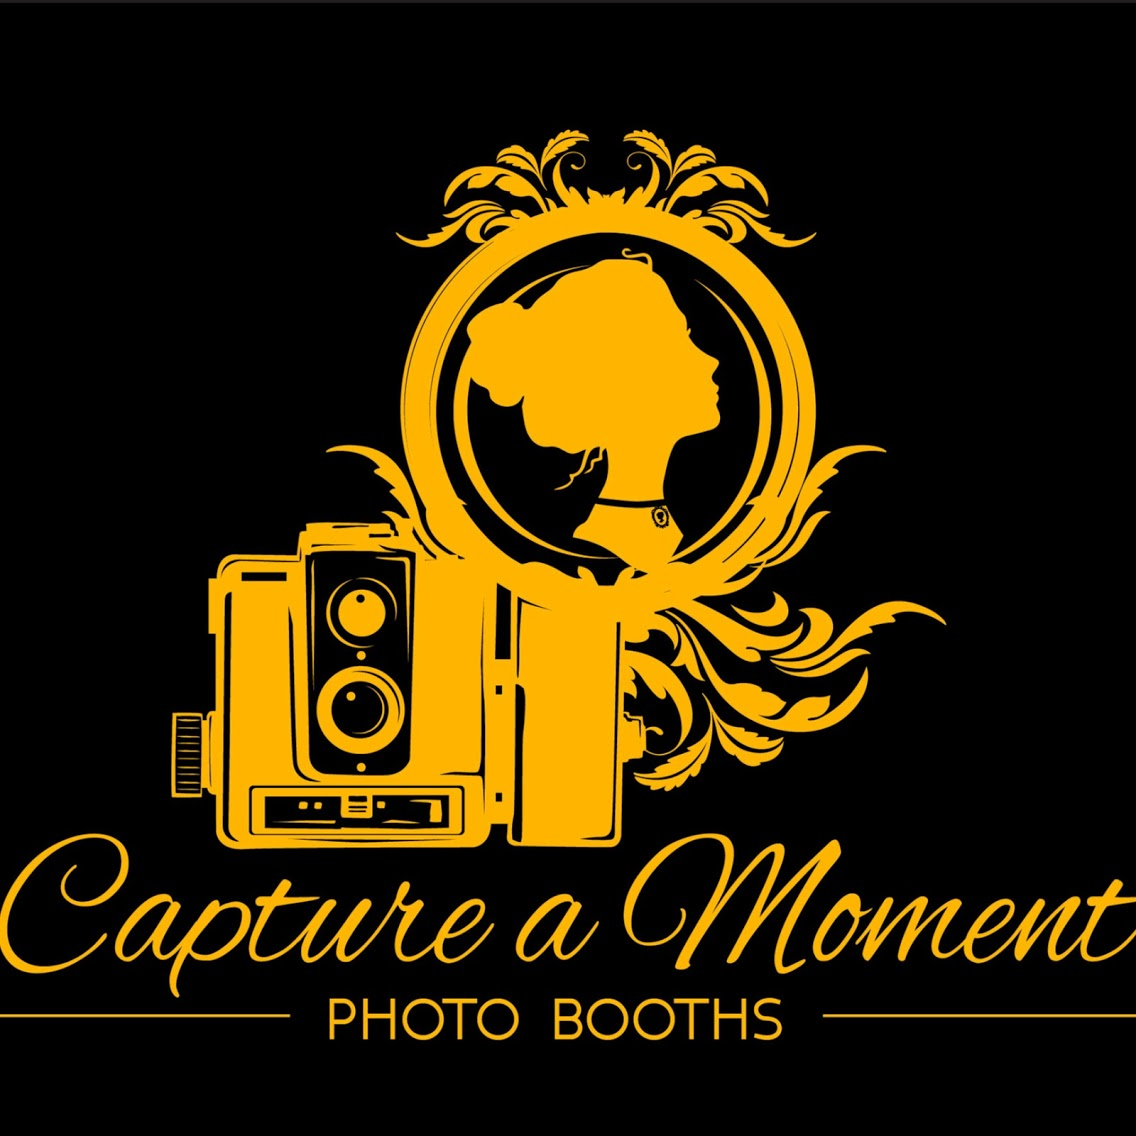 Capture A Moment Photo Booths